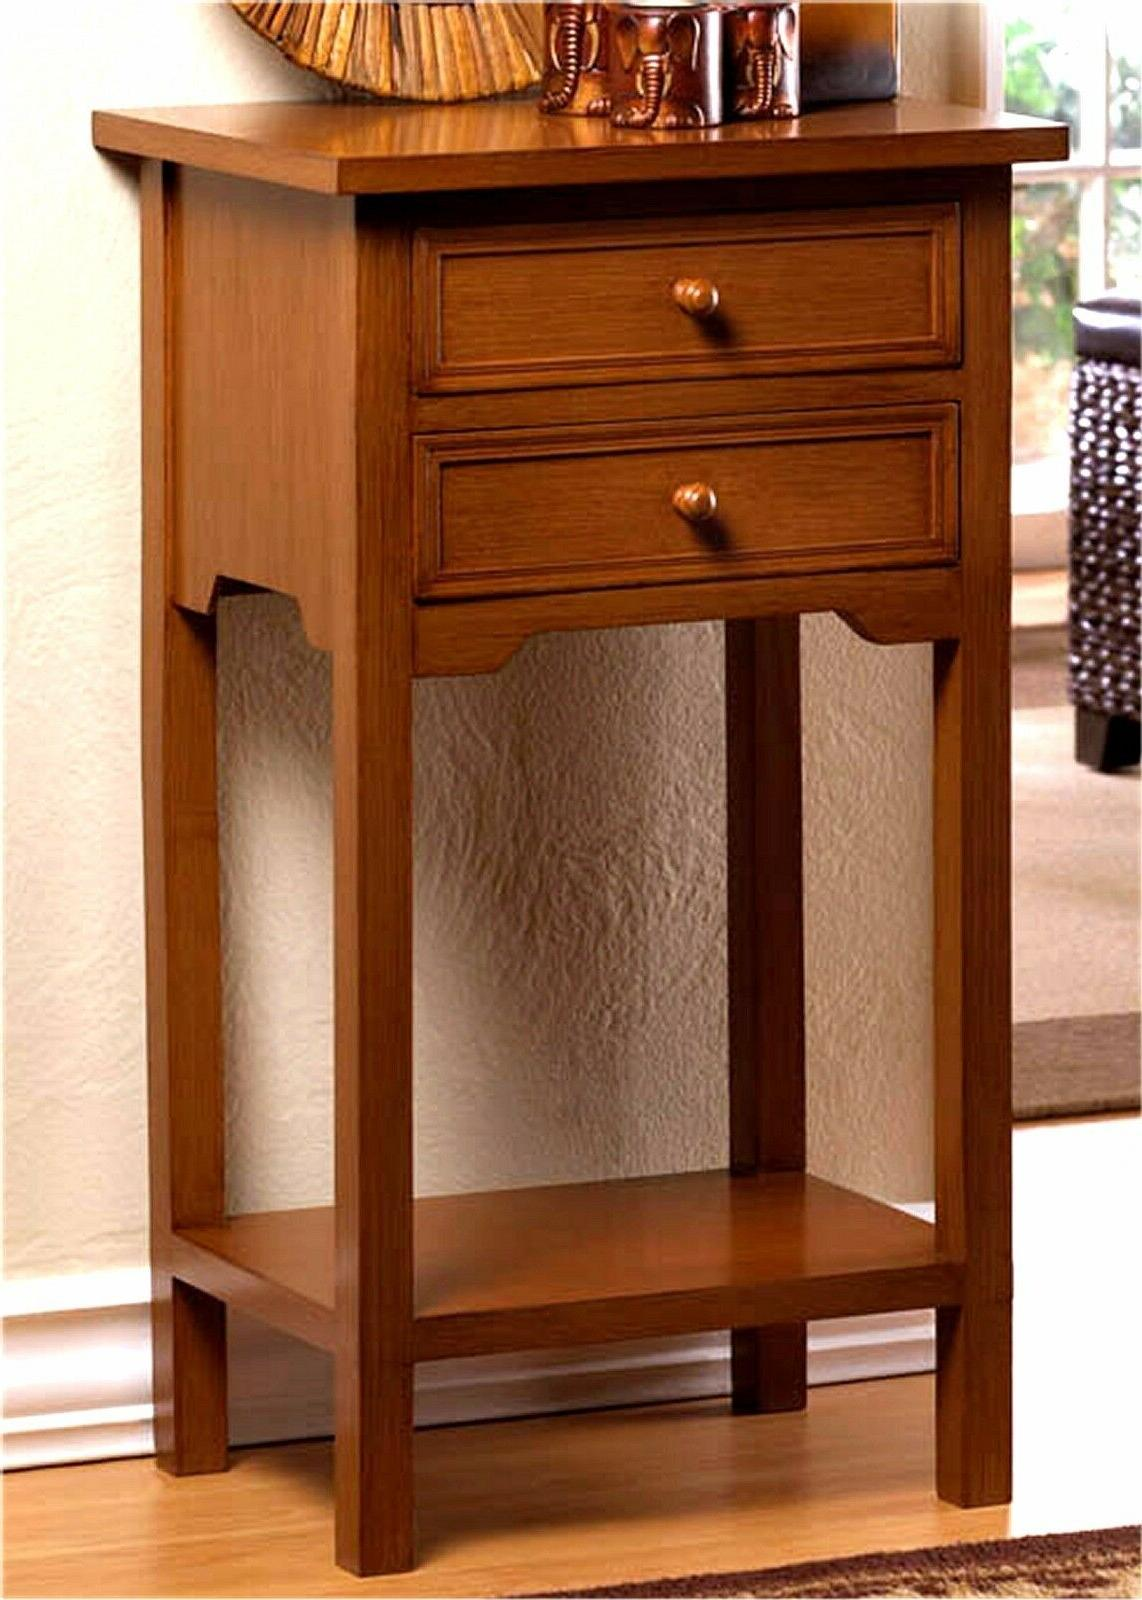 Set of Two NATURAL WOOD NIGHT STAND TABLES DRAWERS SHELF NIB